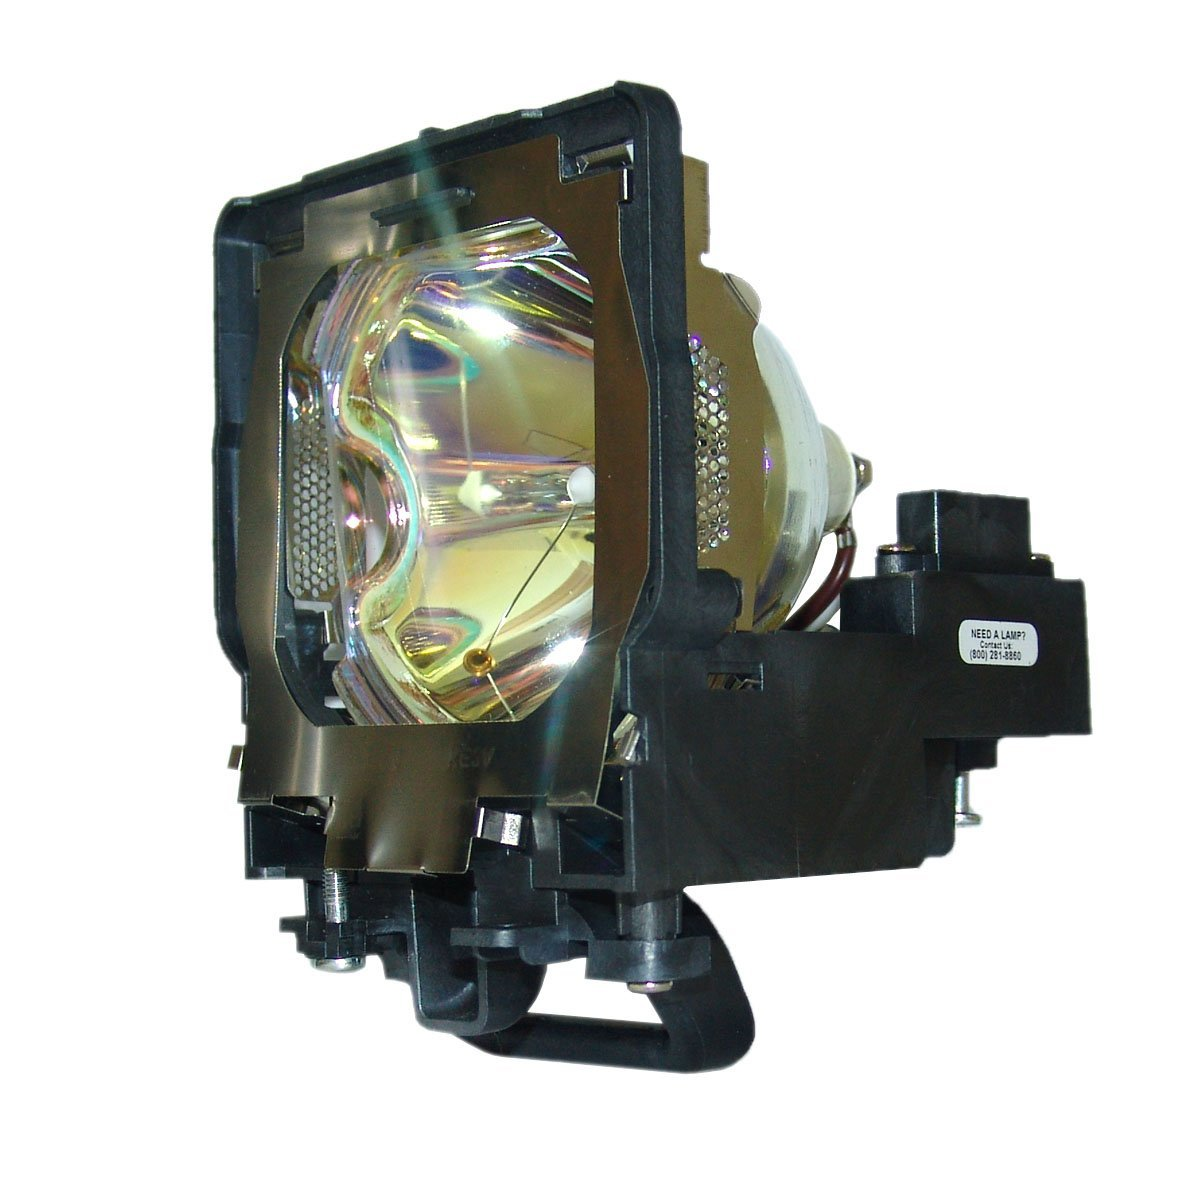 Projector Lamp Bulb POA-LMP109 LMP109 610-334-6267 for SANYO PLC-XF47 PLC-XF47W LC-XT5 LX1500 with housing lamp housing for sanyo 610 3252957 6103252957 projector dlp lcd bulb